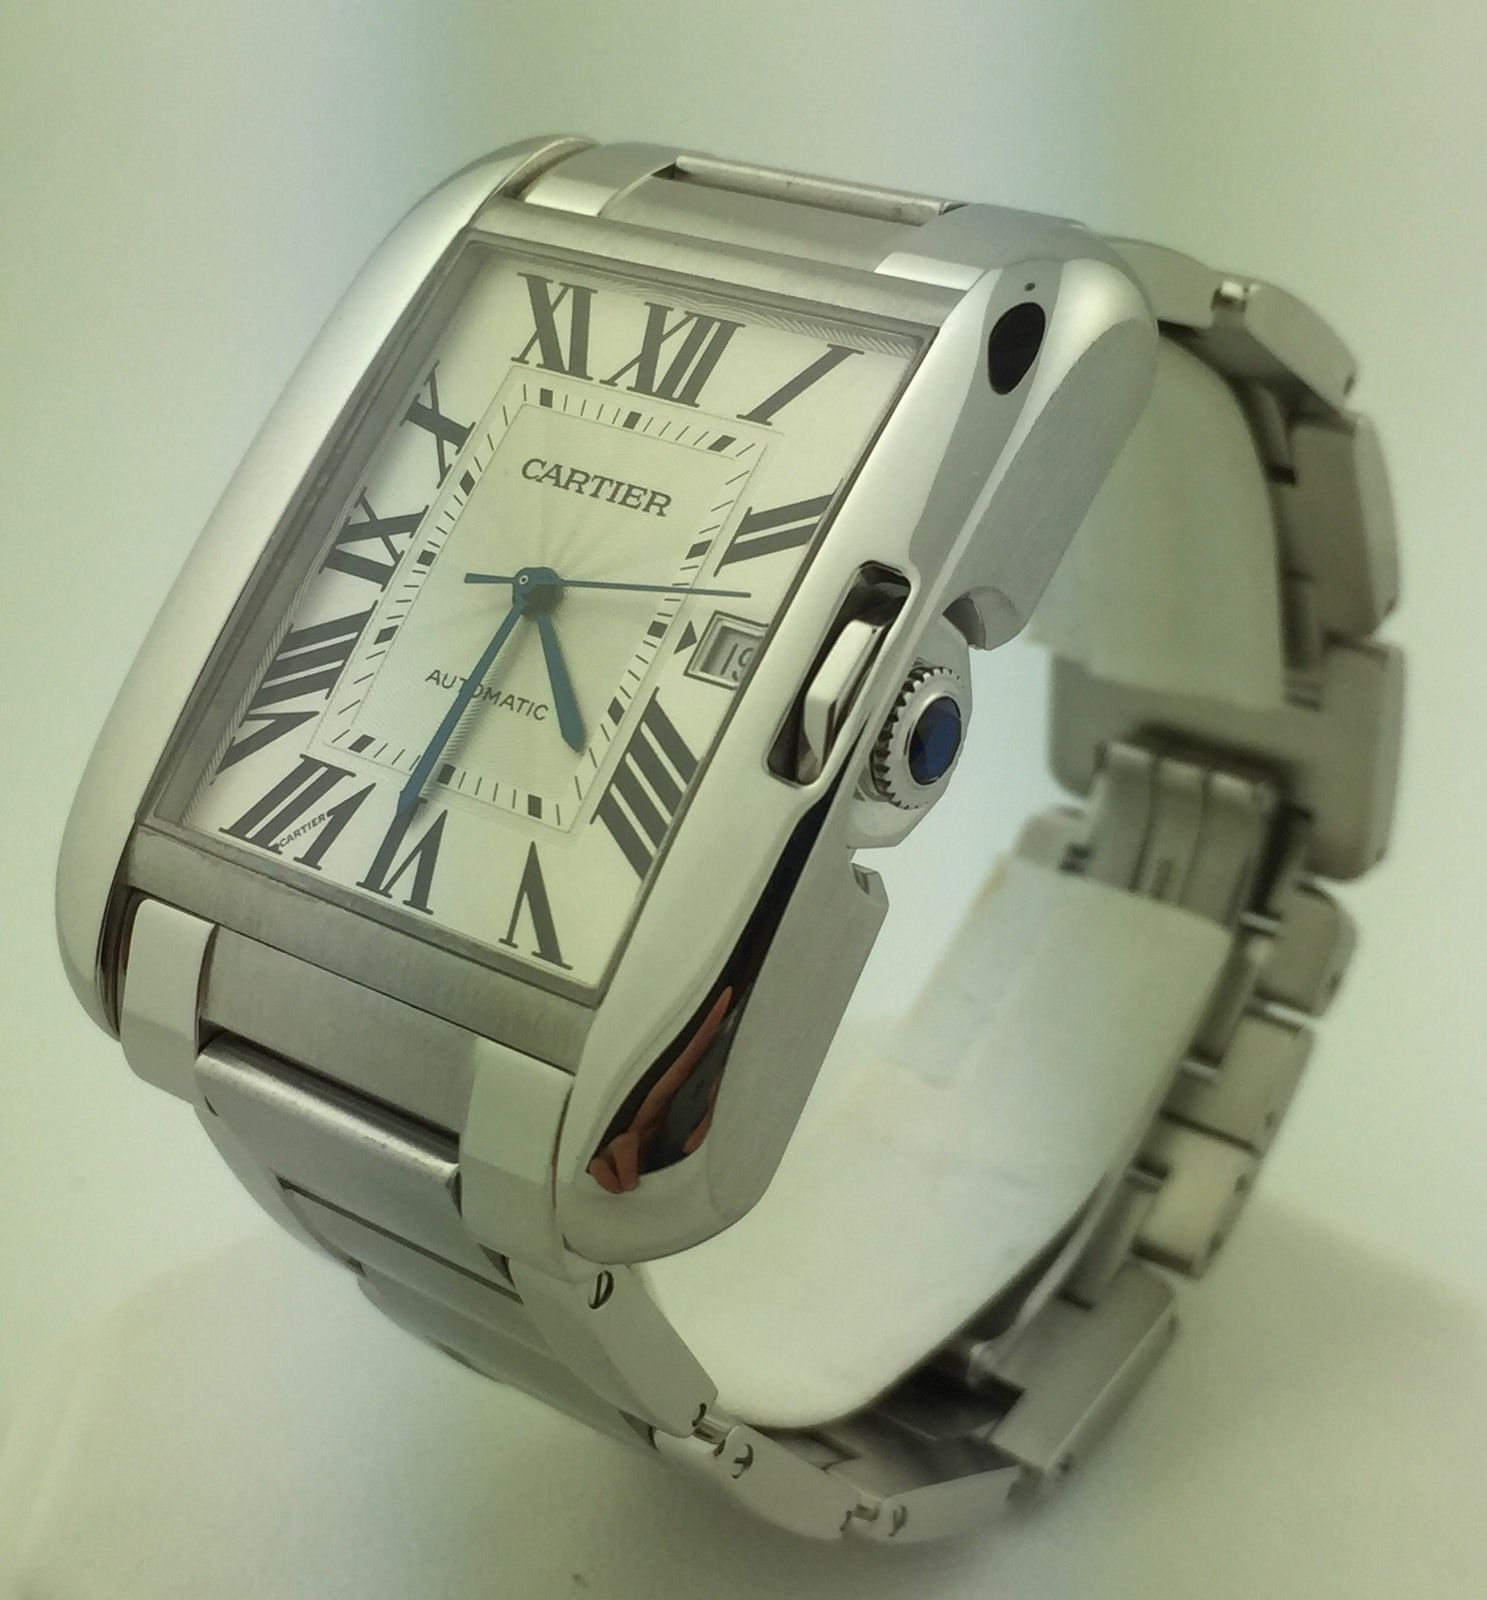 s l1600 1 4 - Cartier Tank Anglaise XL